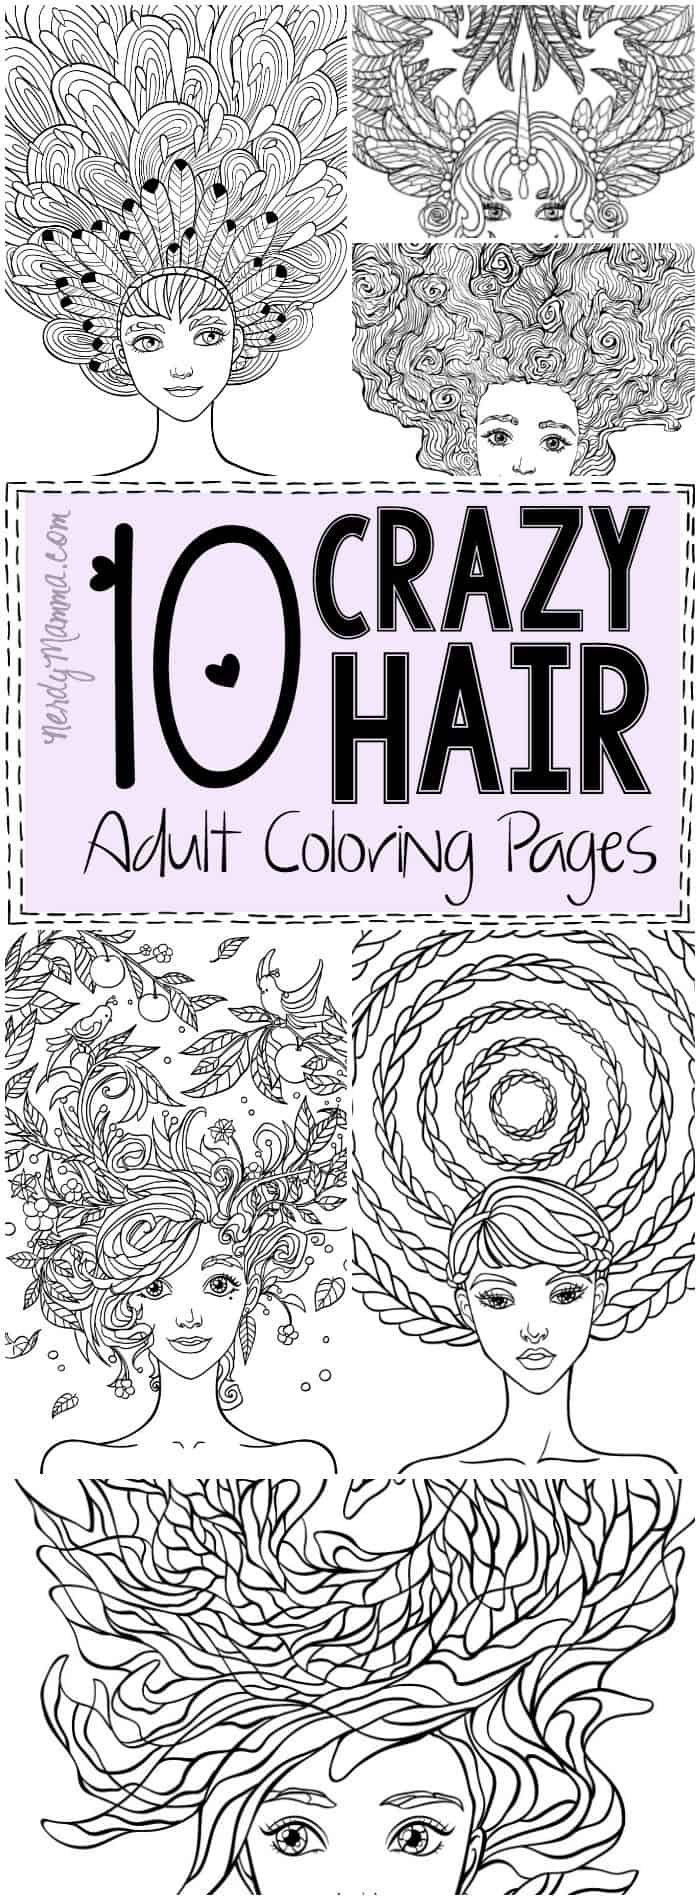 10 Crazy Hair Adult Coloring Pages Nerdy Mamma